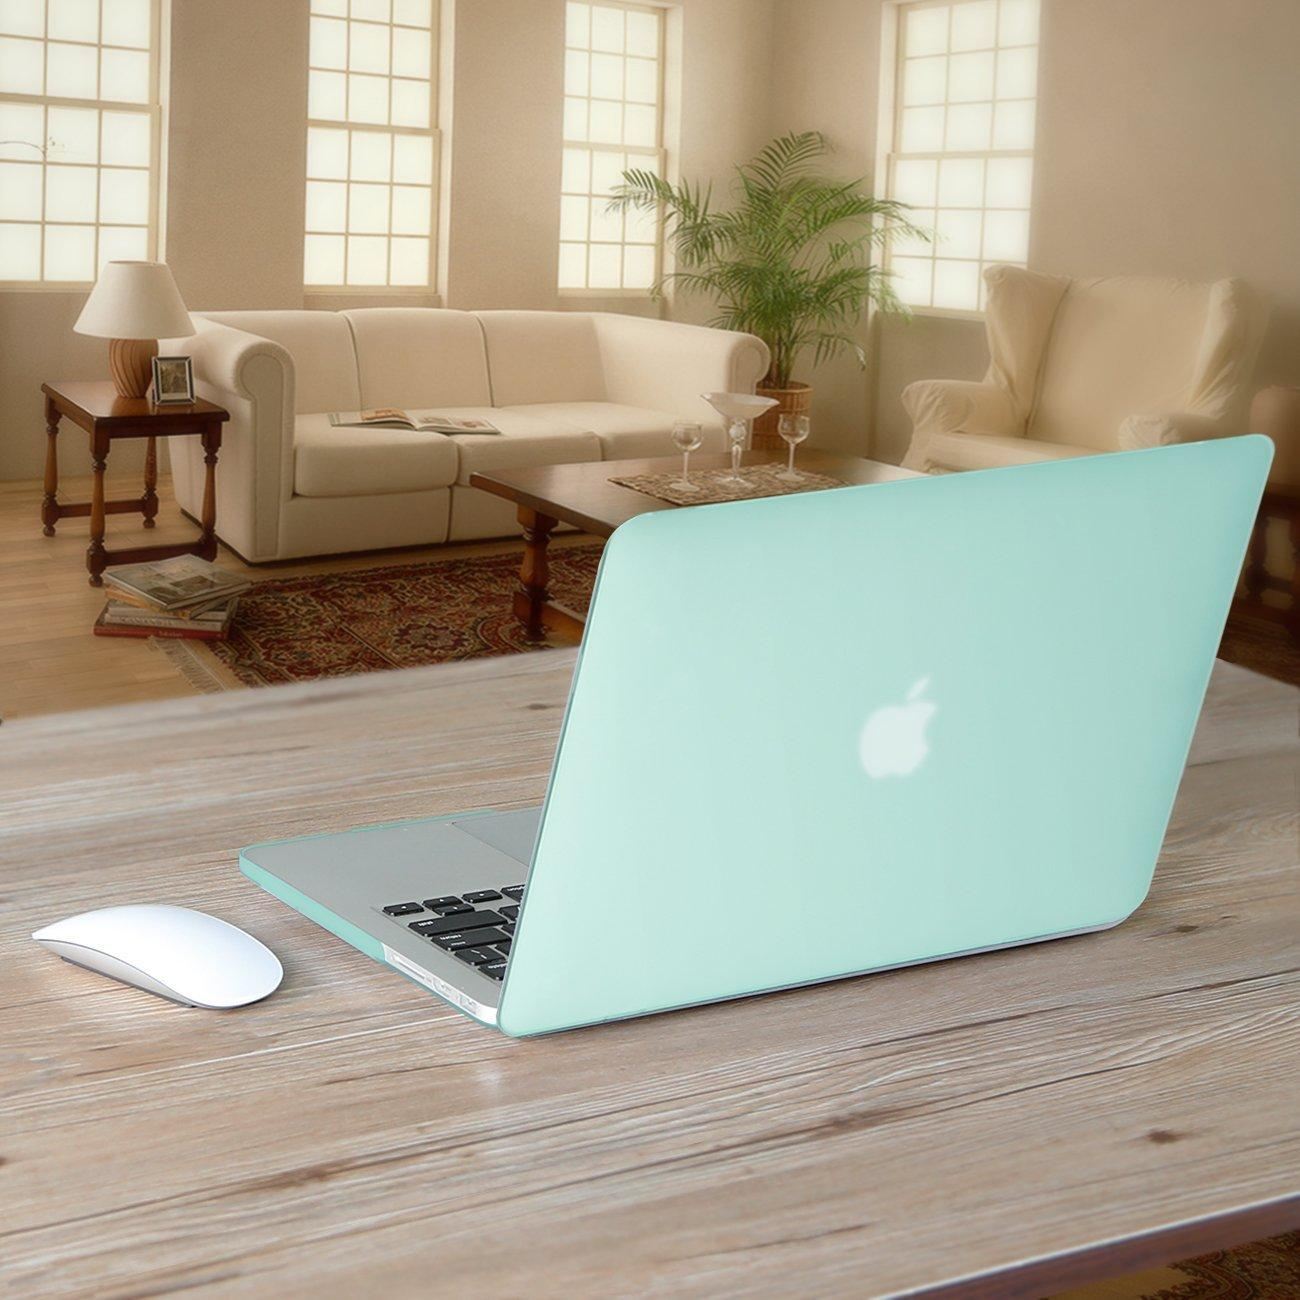 """$11.99 Inateck 13-inch Soft-touch Hard Shell Case Cover for 13.3"""" MacBook Pro Retina, Mint Green"""